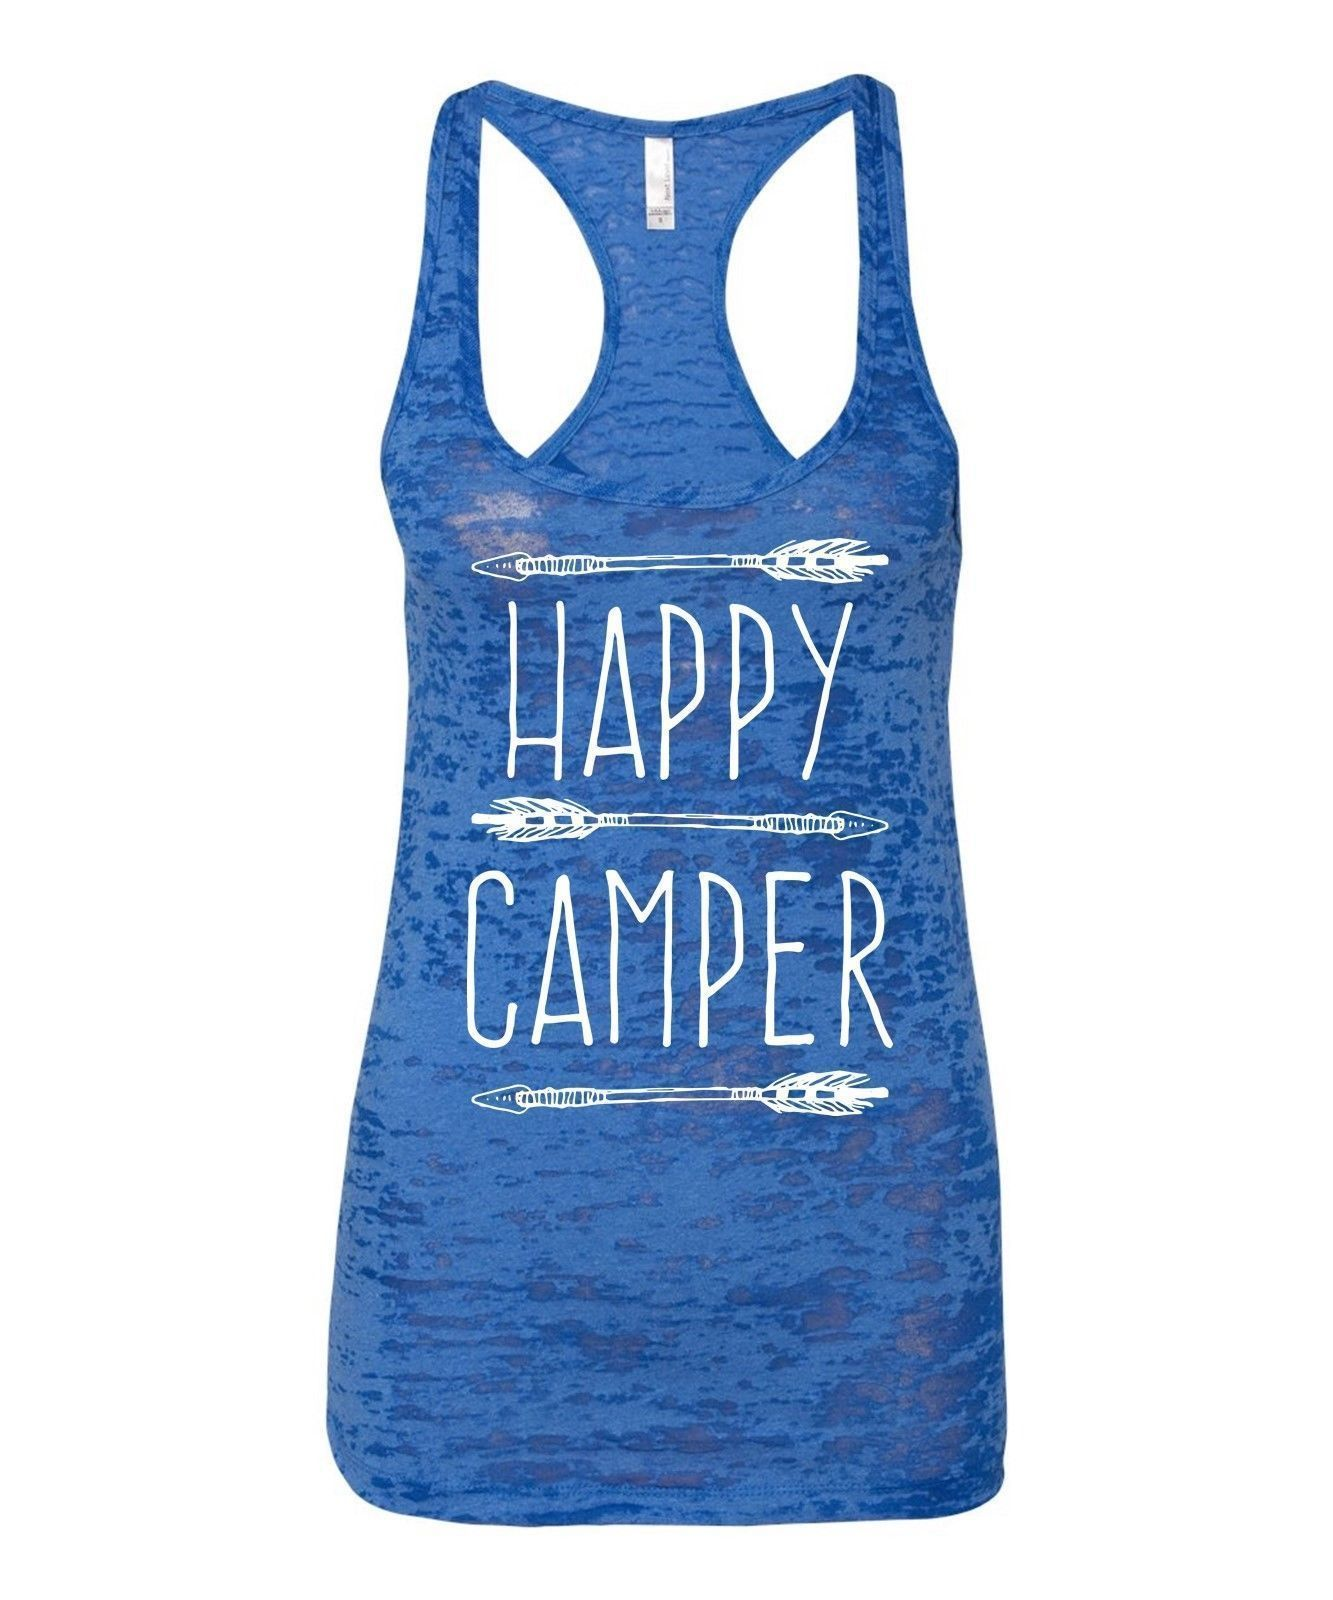 Burnout Tank Top Happy Camper I S Camping T Gear Ladies Jr Vacation Summer Gift